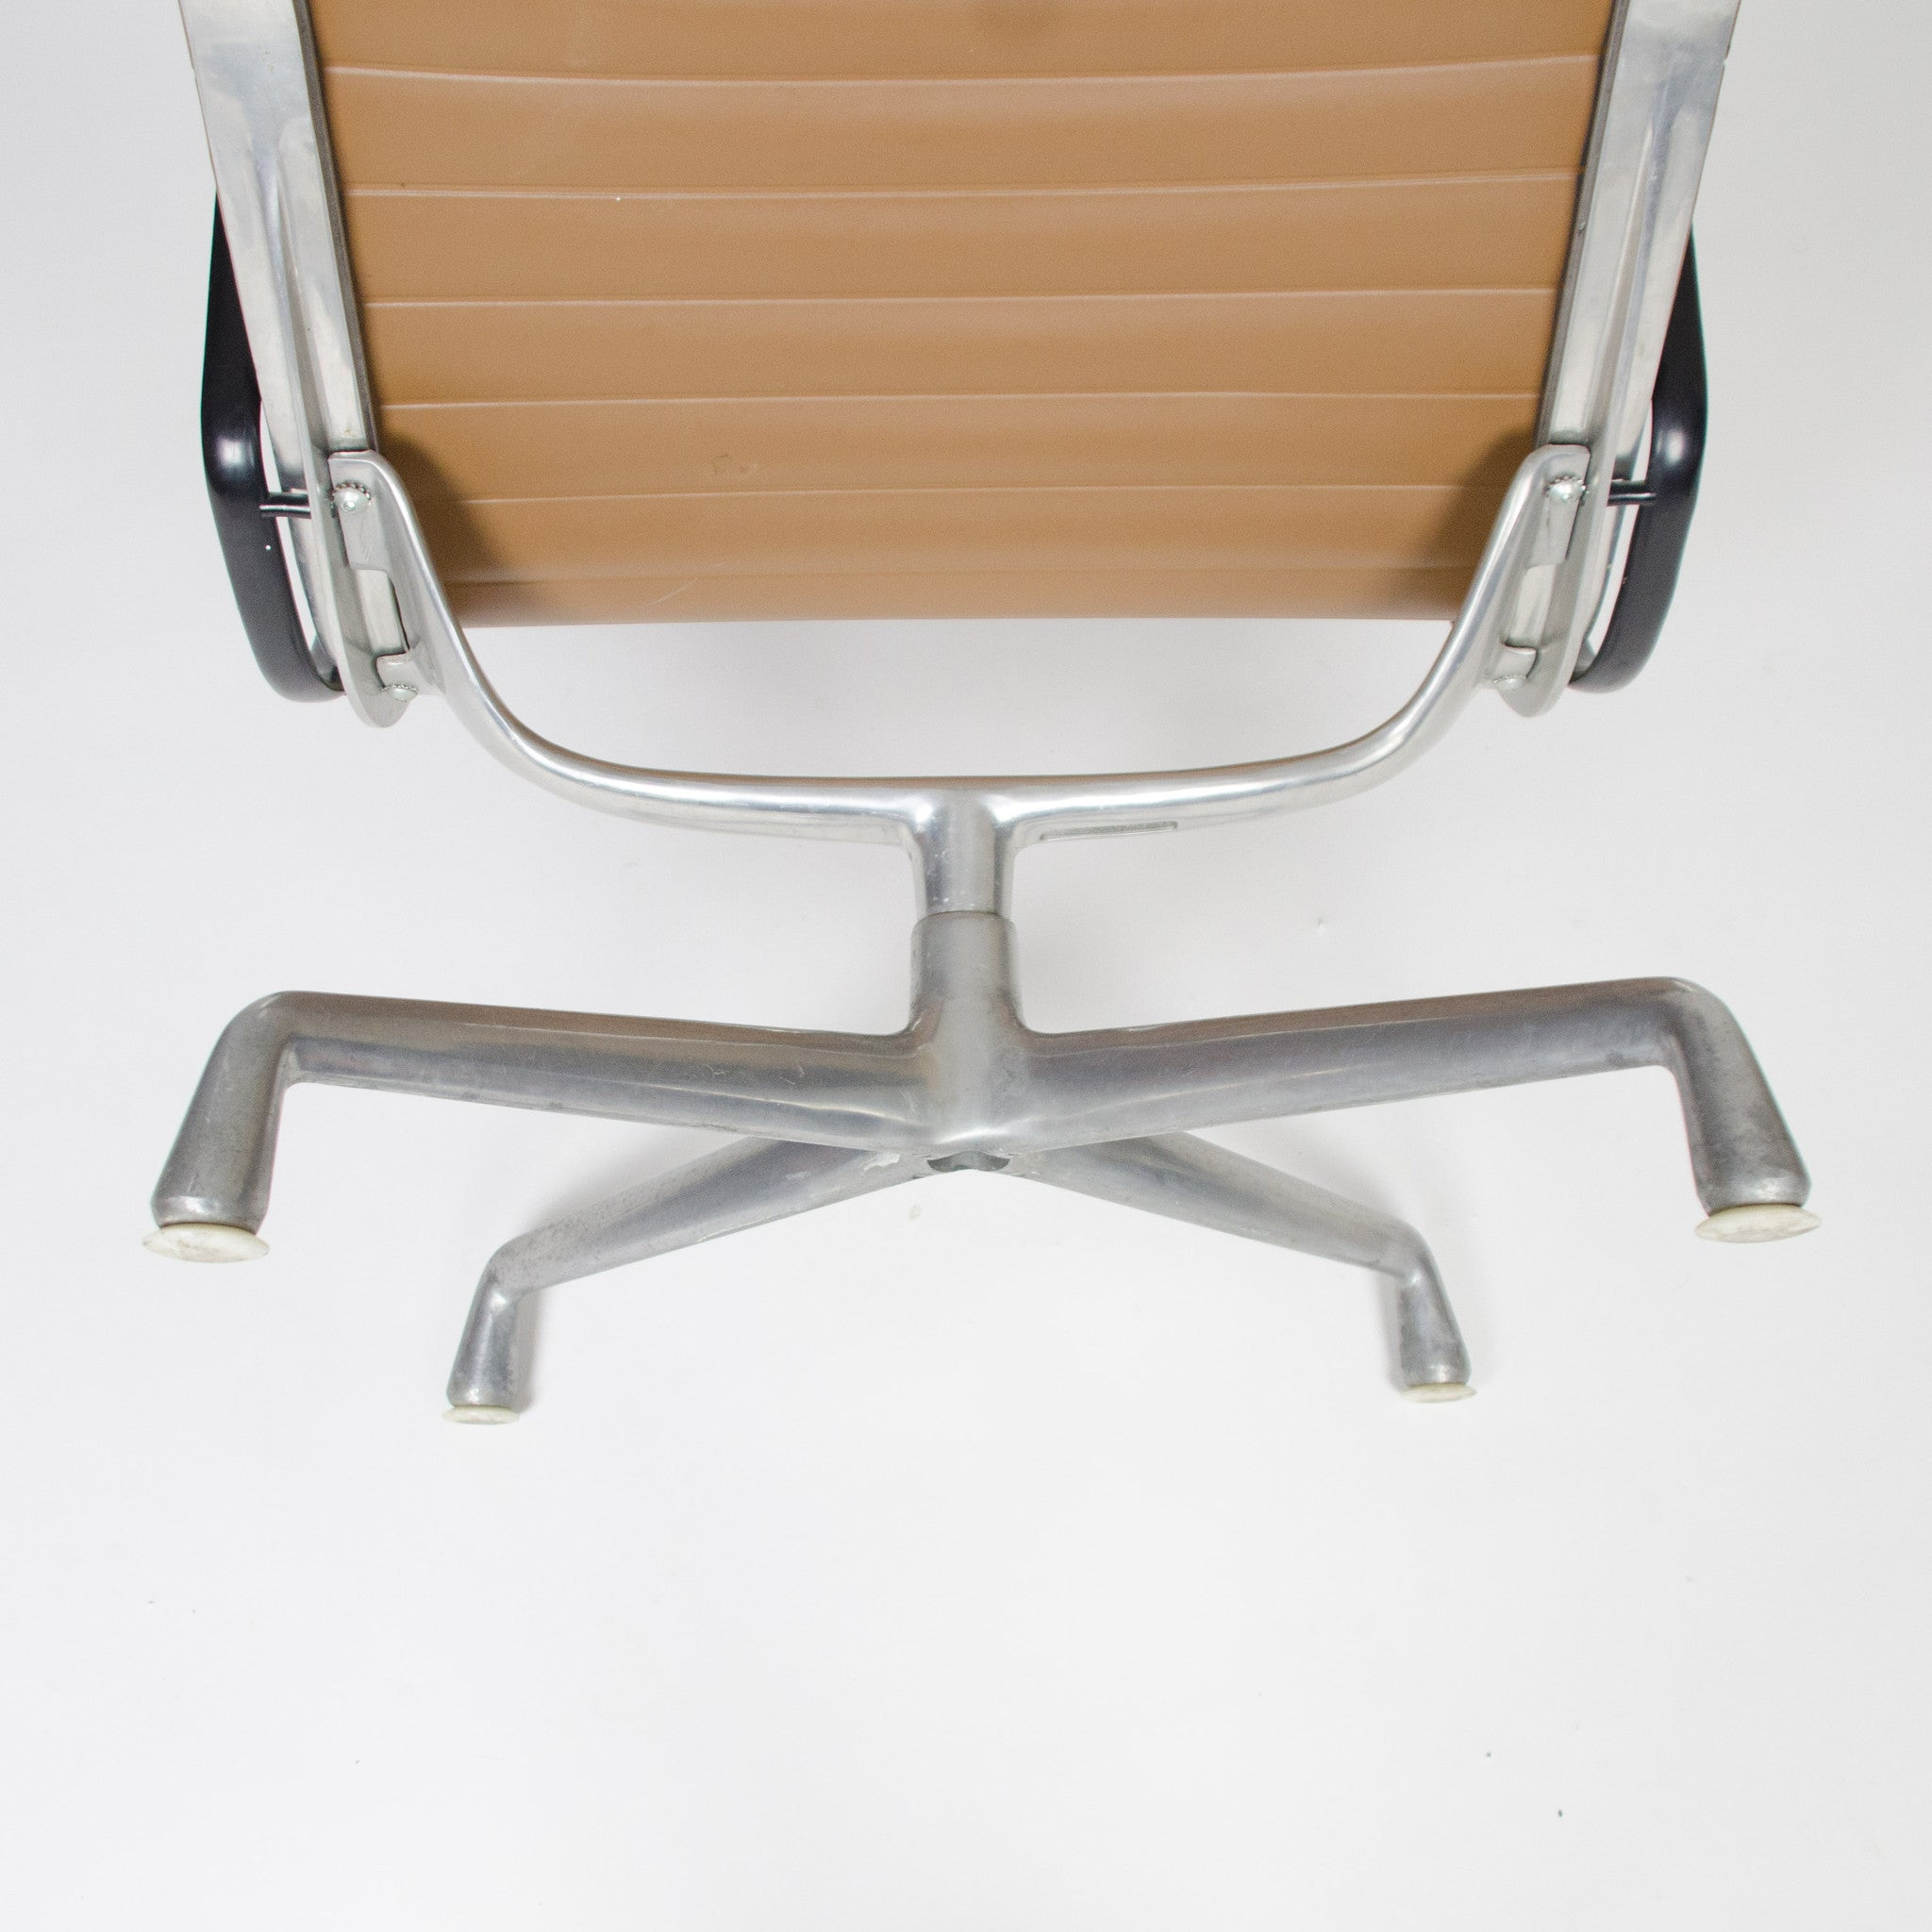 Eames Herman Miller Aluminum Group Lounge Chair, Tan Upholstery